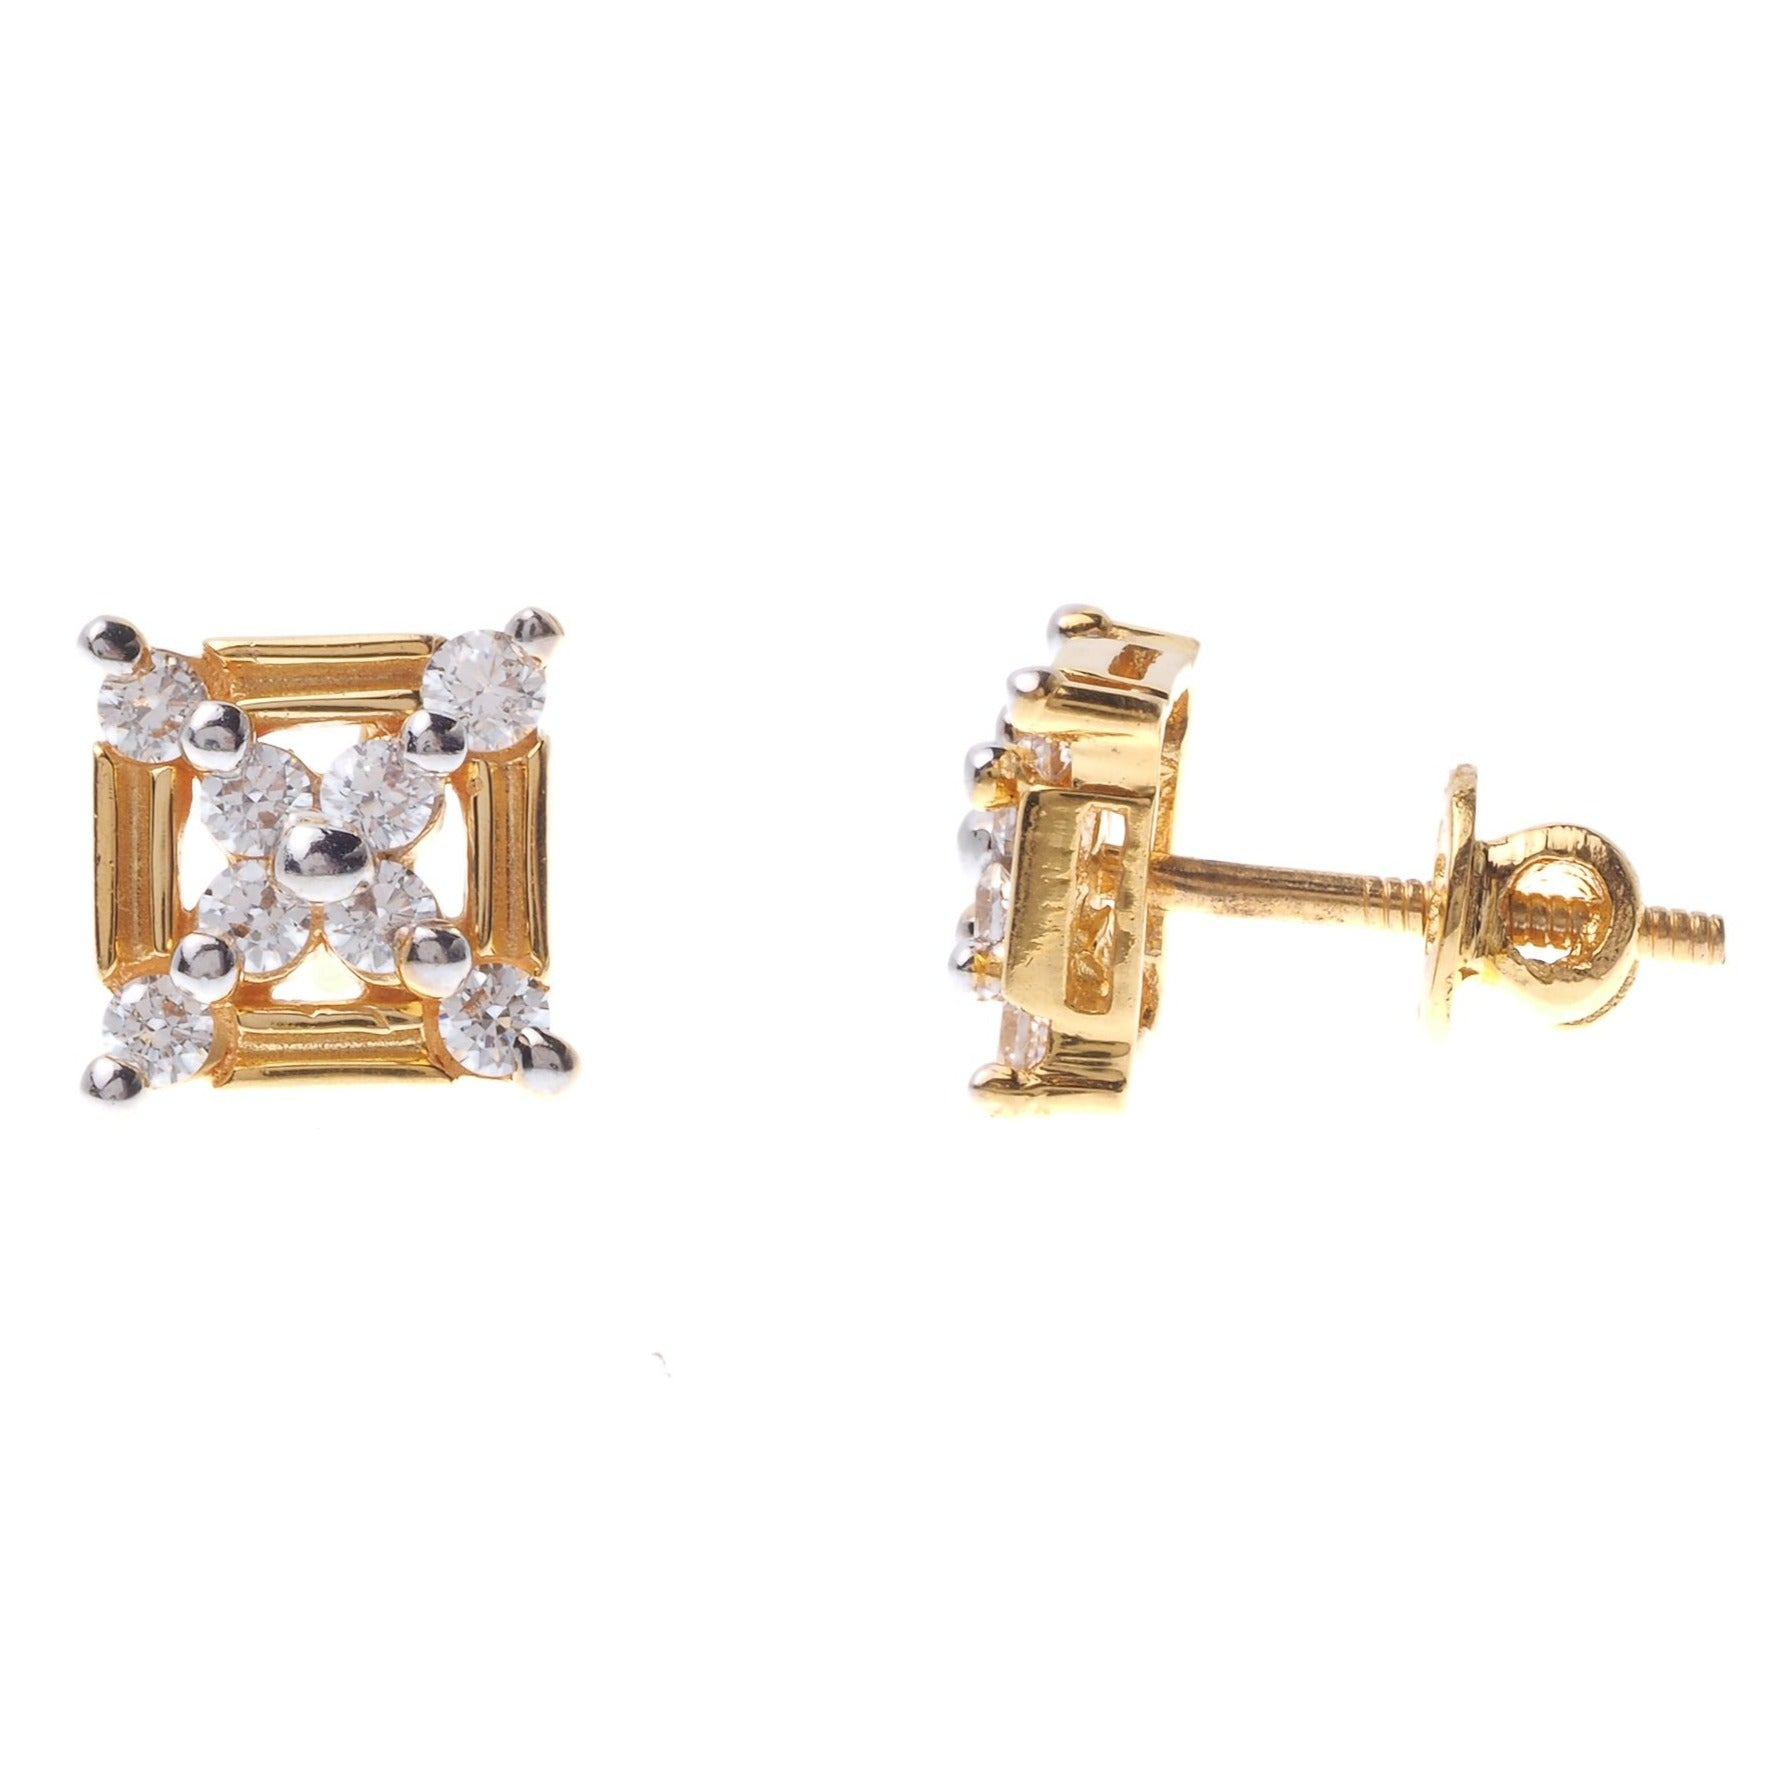 22ct Gold Stud Earrings set with Swarovski Zirconias (3.23g) ET7101